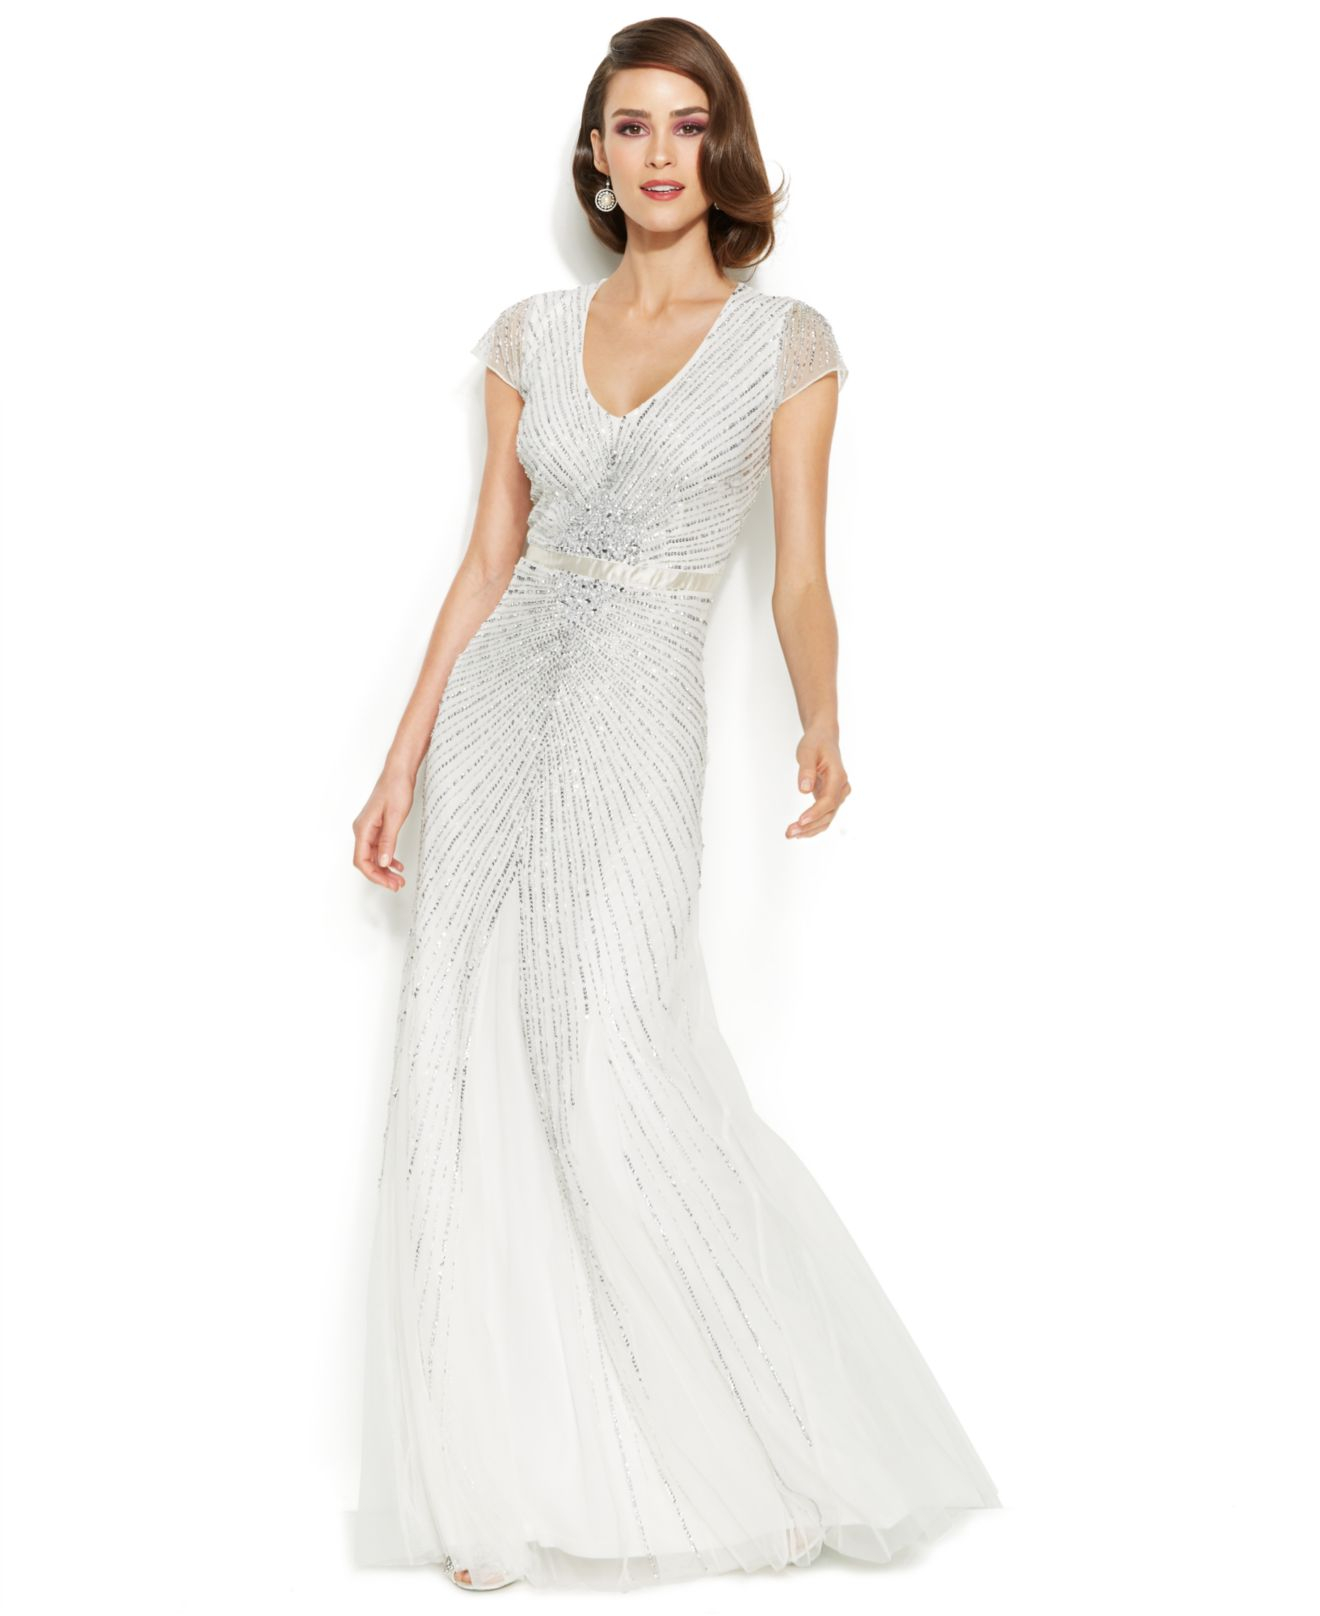 Lyst - Adrianna Papell Cap-Sleeve Embellished Sunburst Gown in White